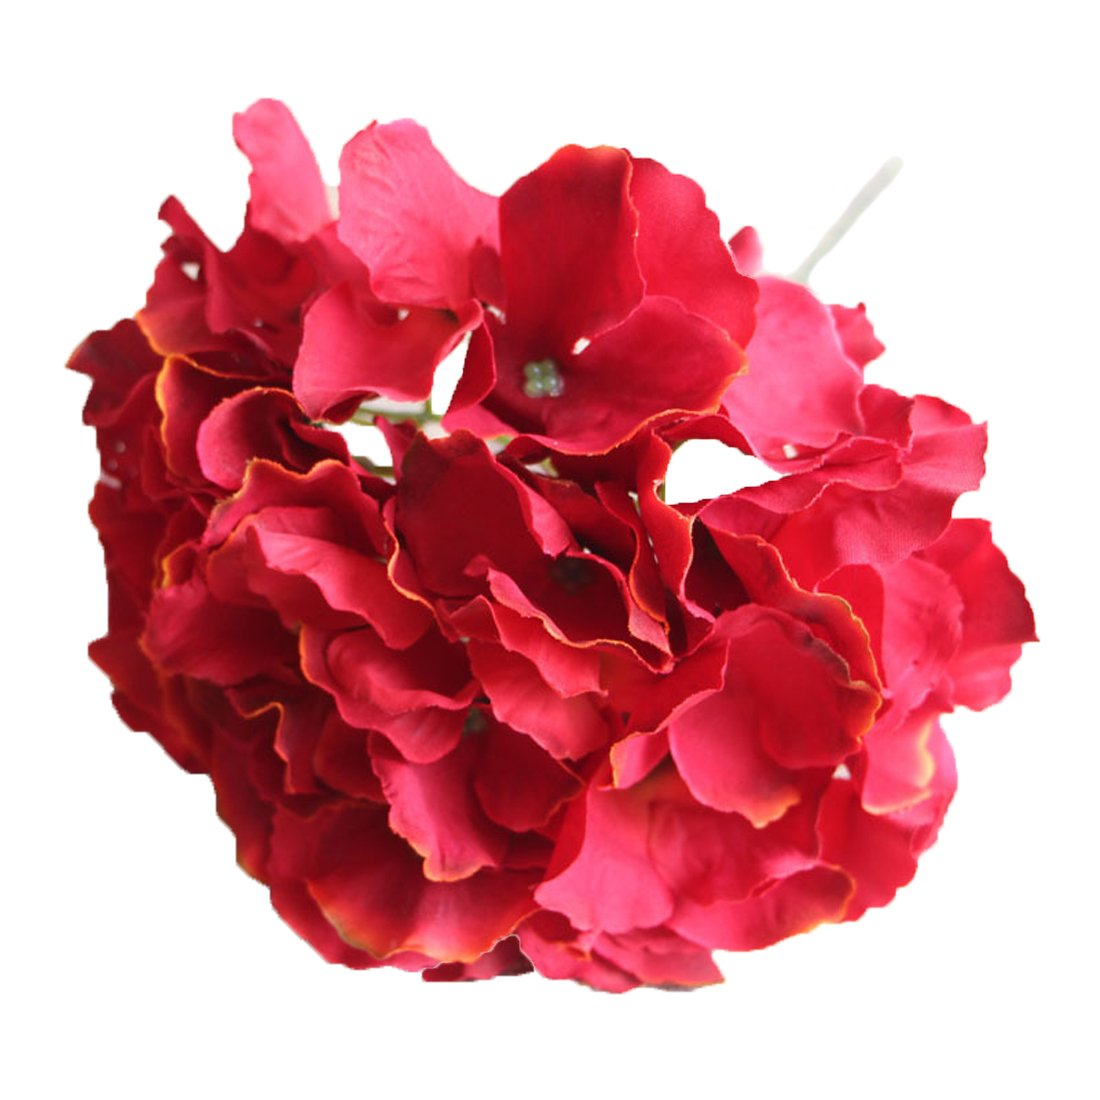 Calcifer 10 Pcs Mallorca Hydrangea Flowers Artificial Flowers for Home Garden Wedding Bohemia Hat Decor (Champagne)